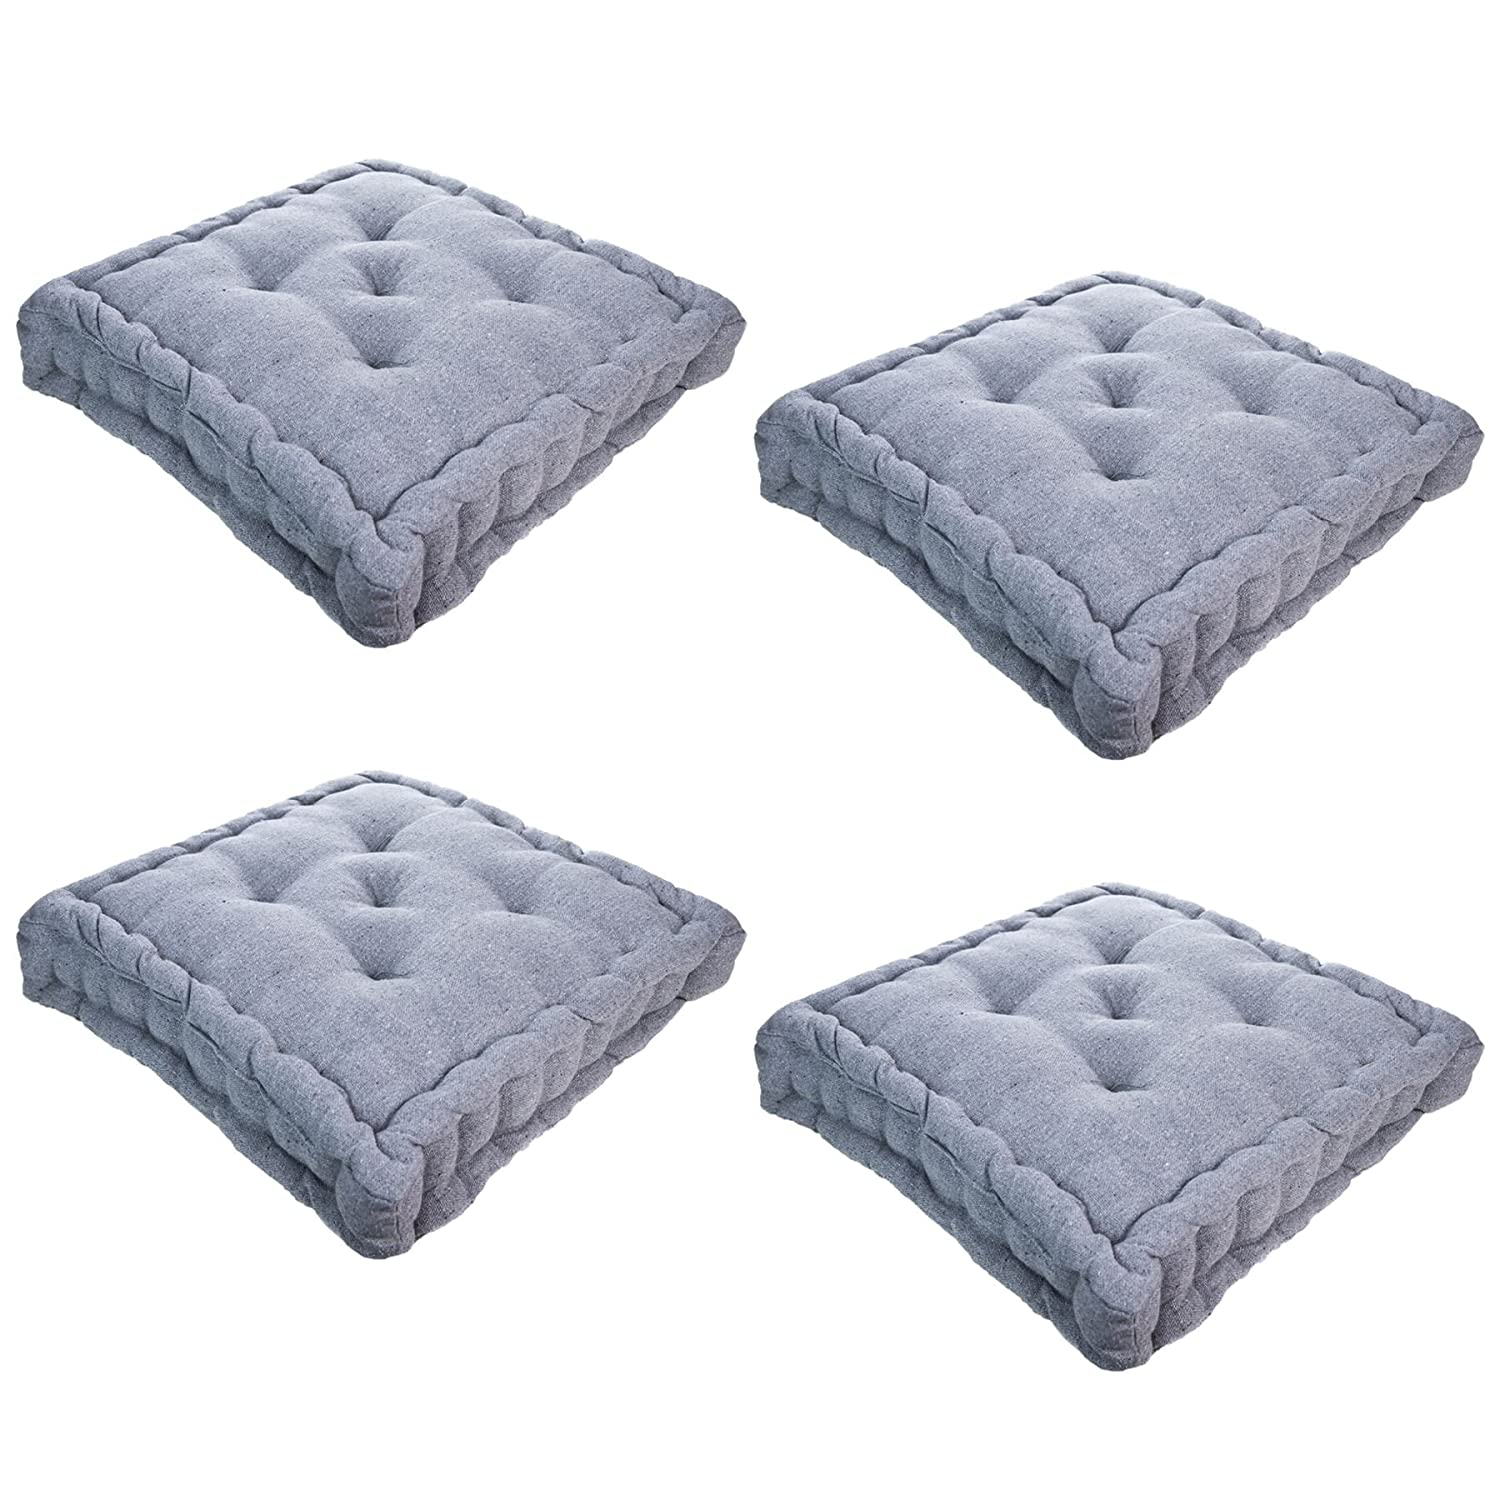 Nicola Spring Dining Chair Cushion Seat Pad Square Padded French Mattress Grey Pack Of 4